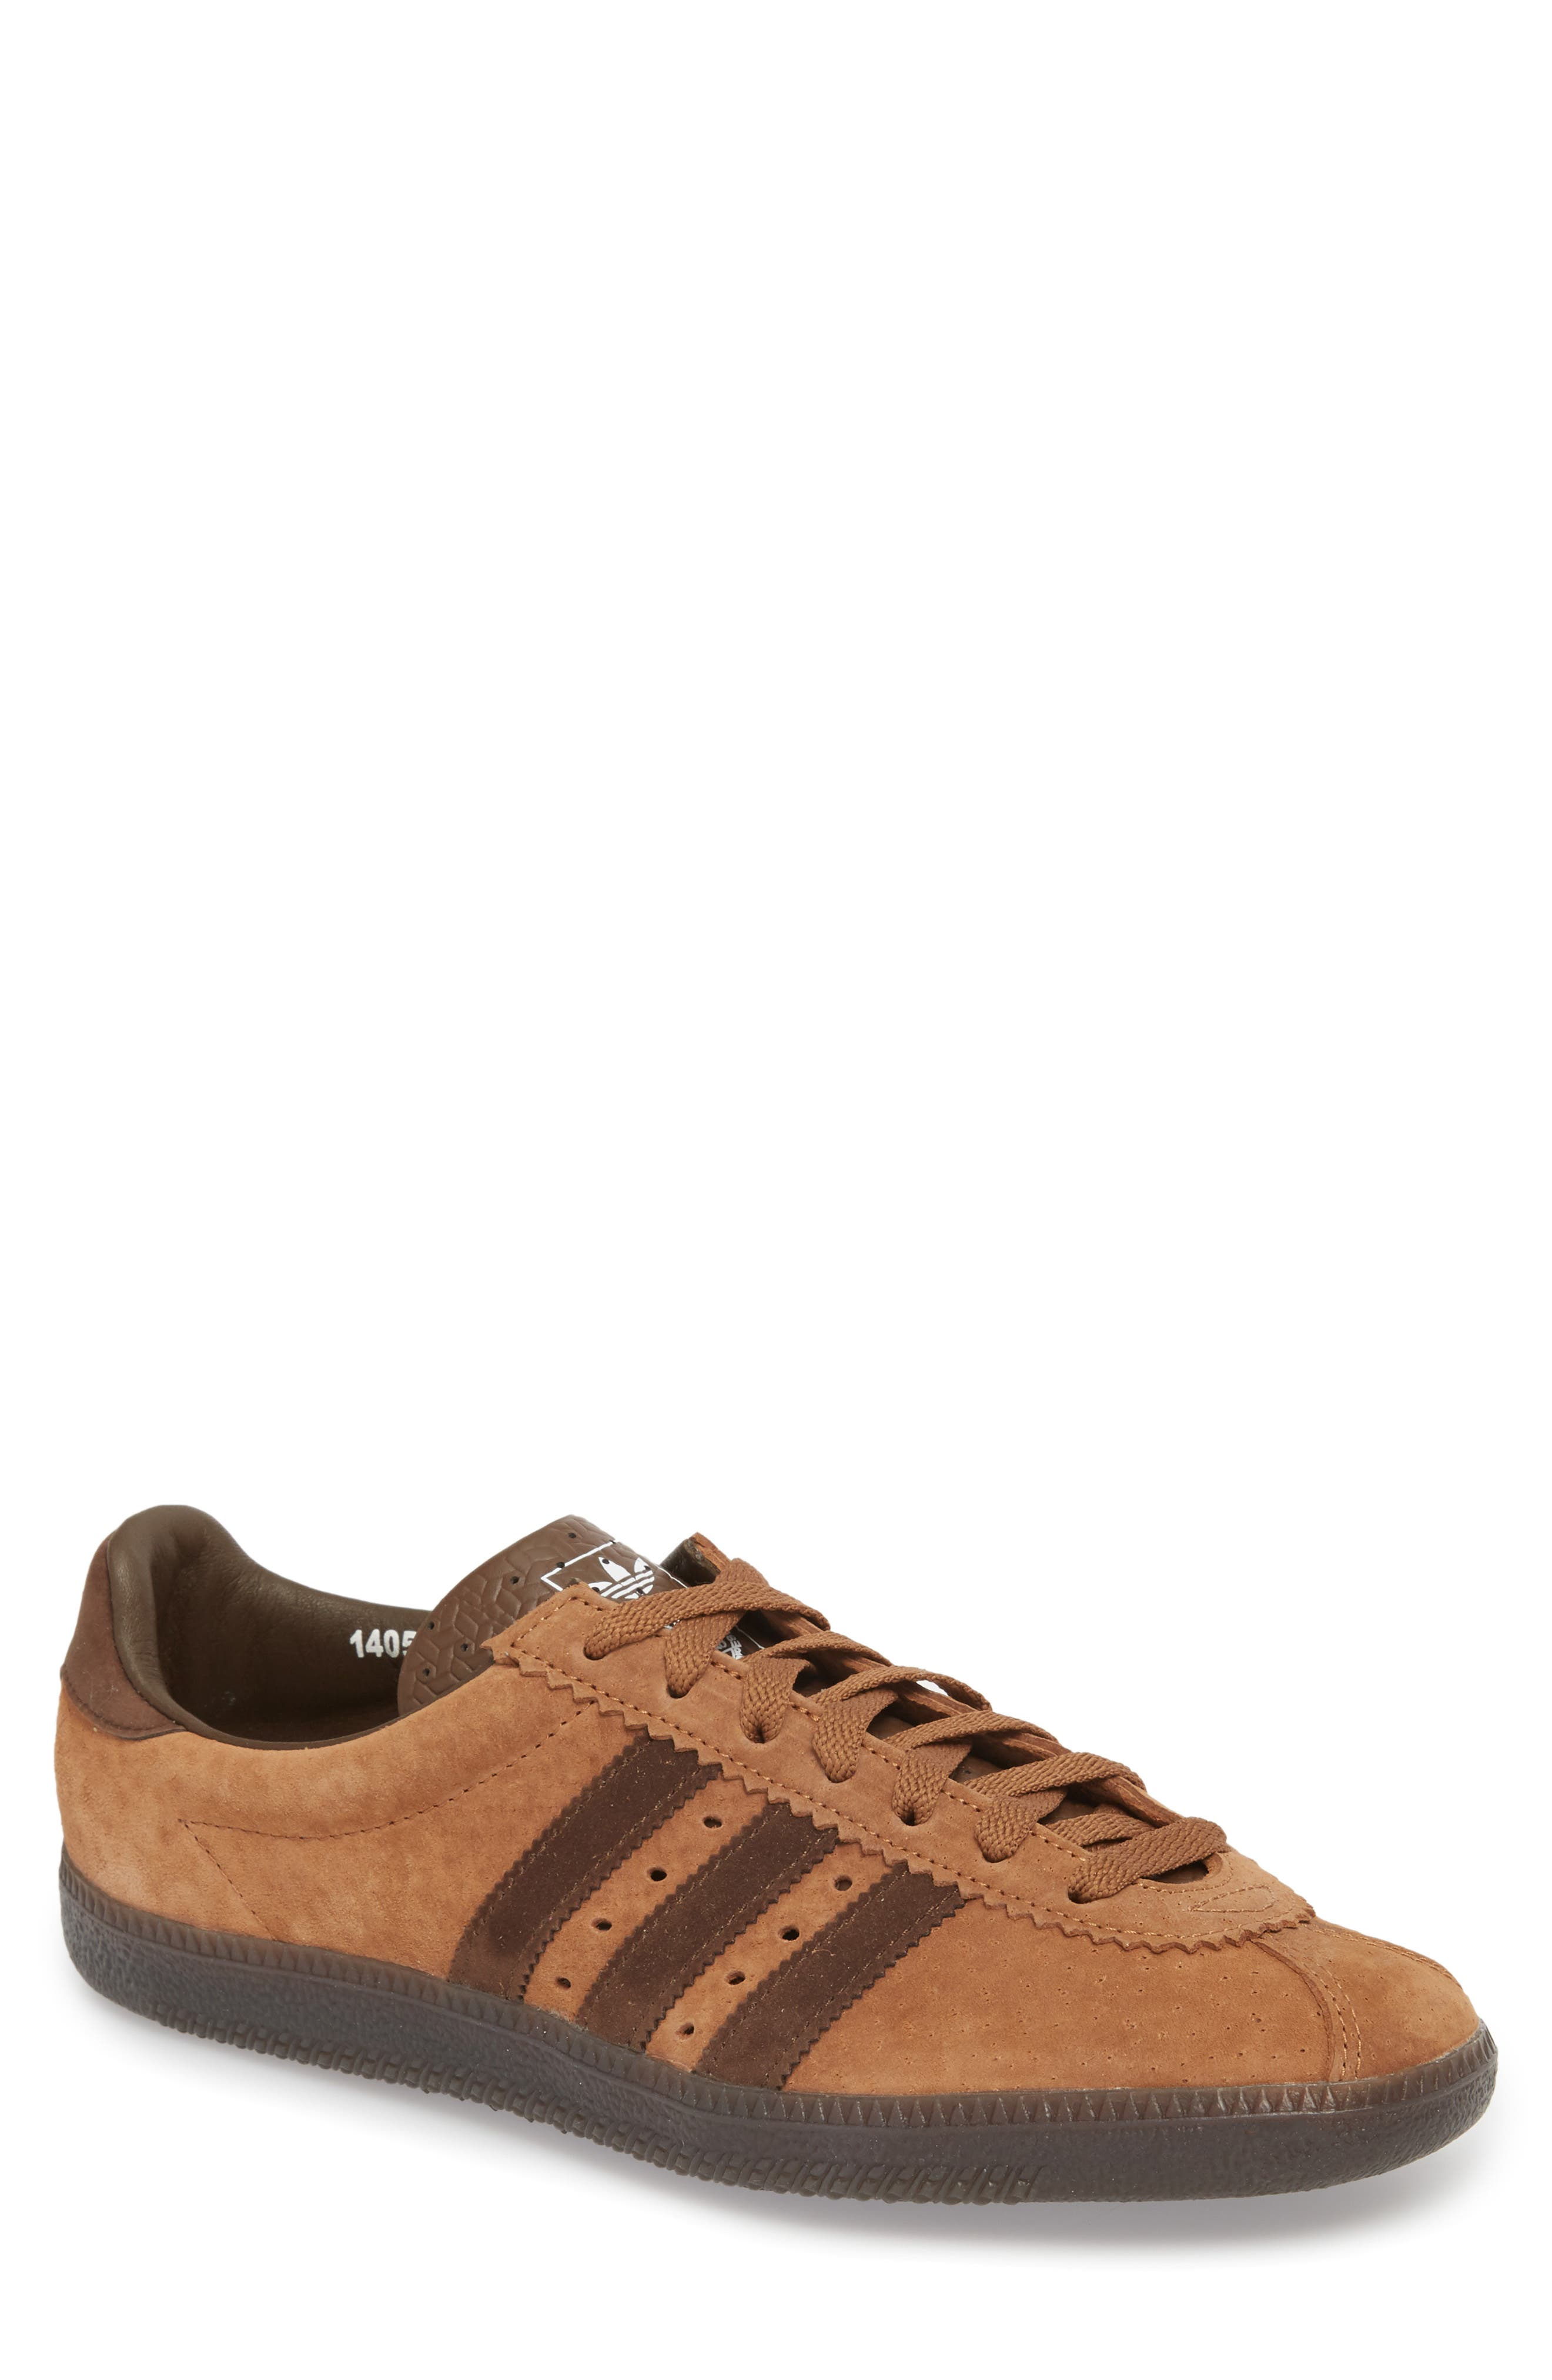 Padiham SPZL Sneaker,                         Main,                         color, Brown